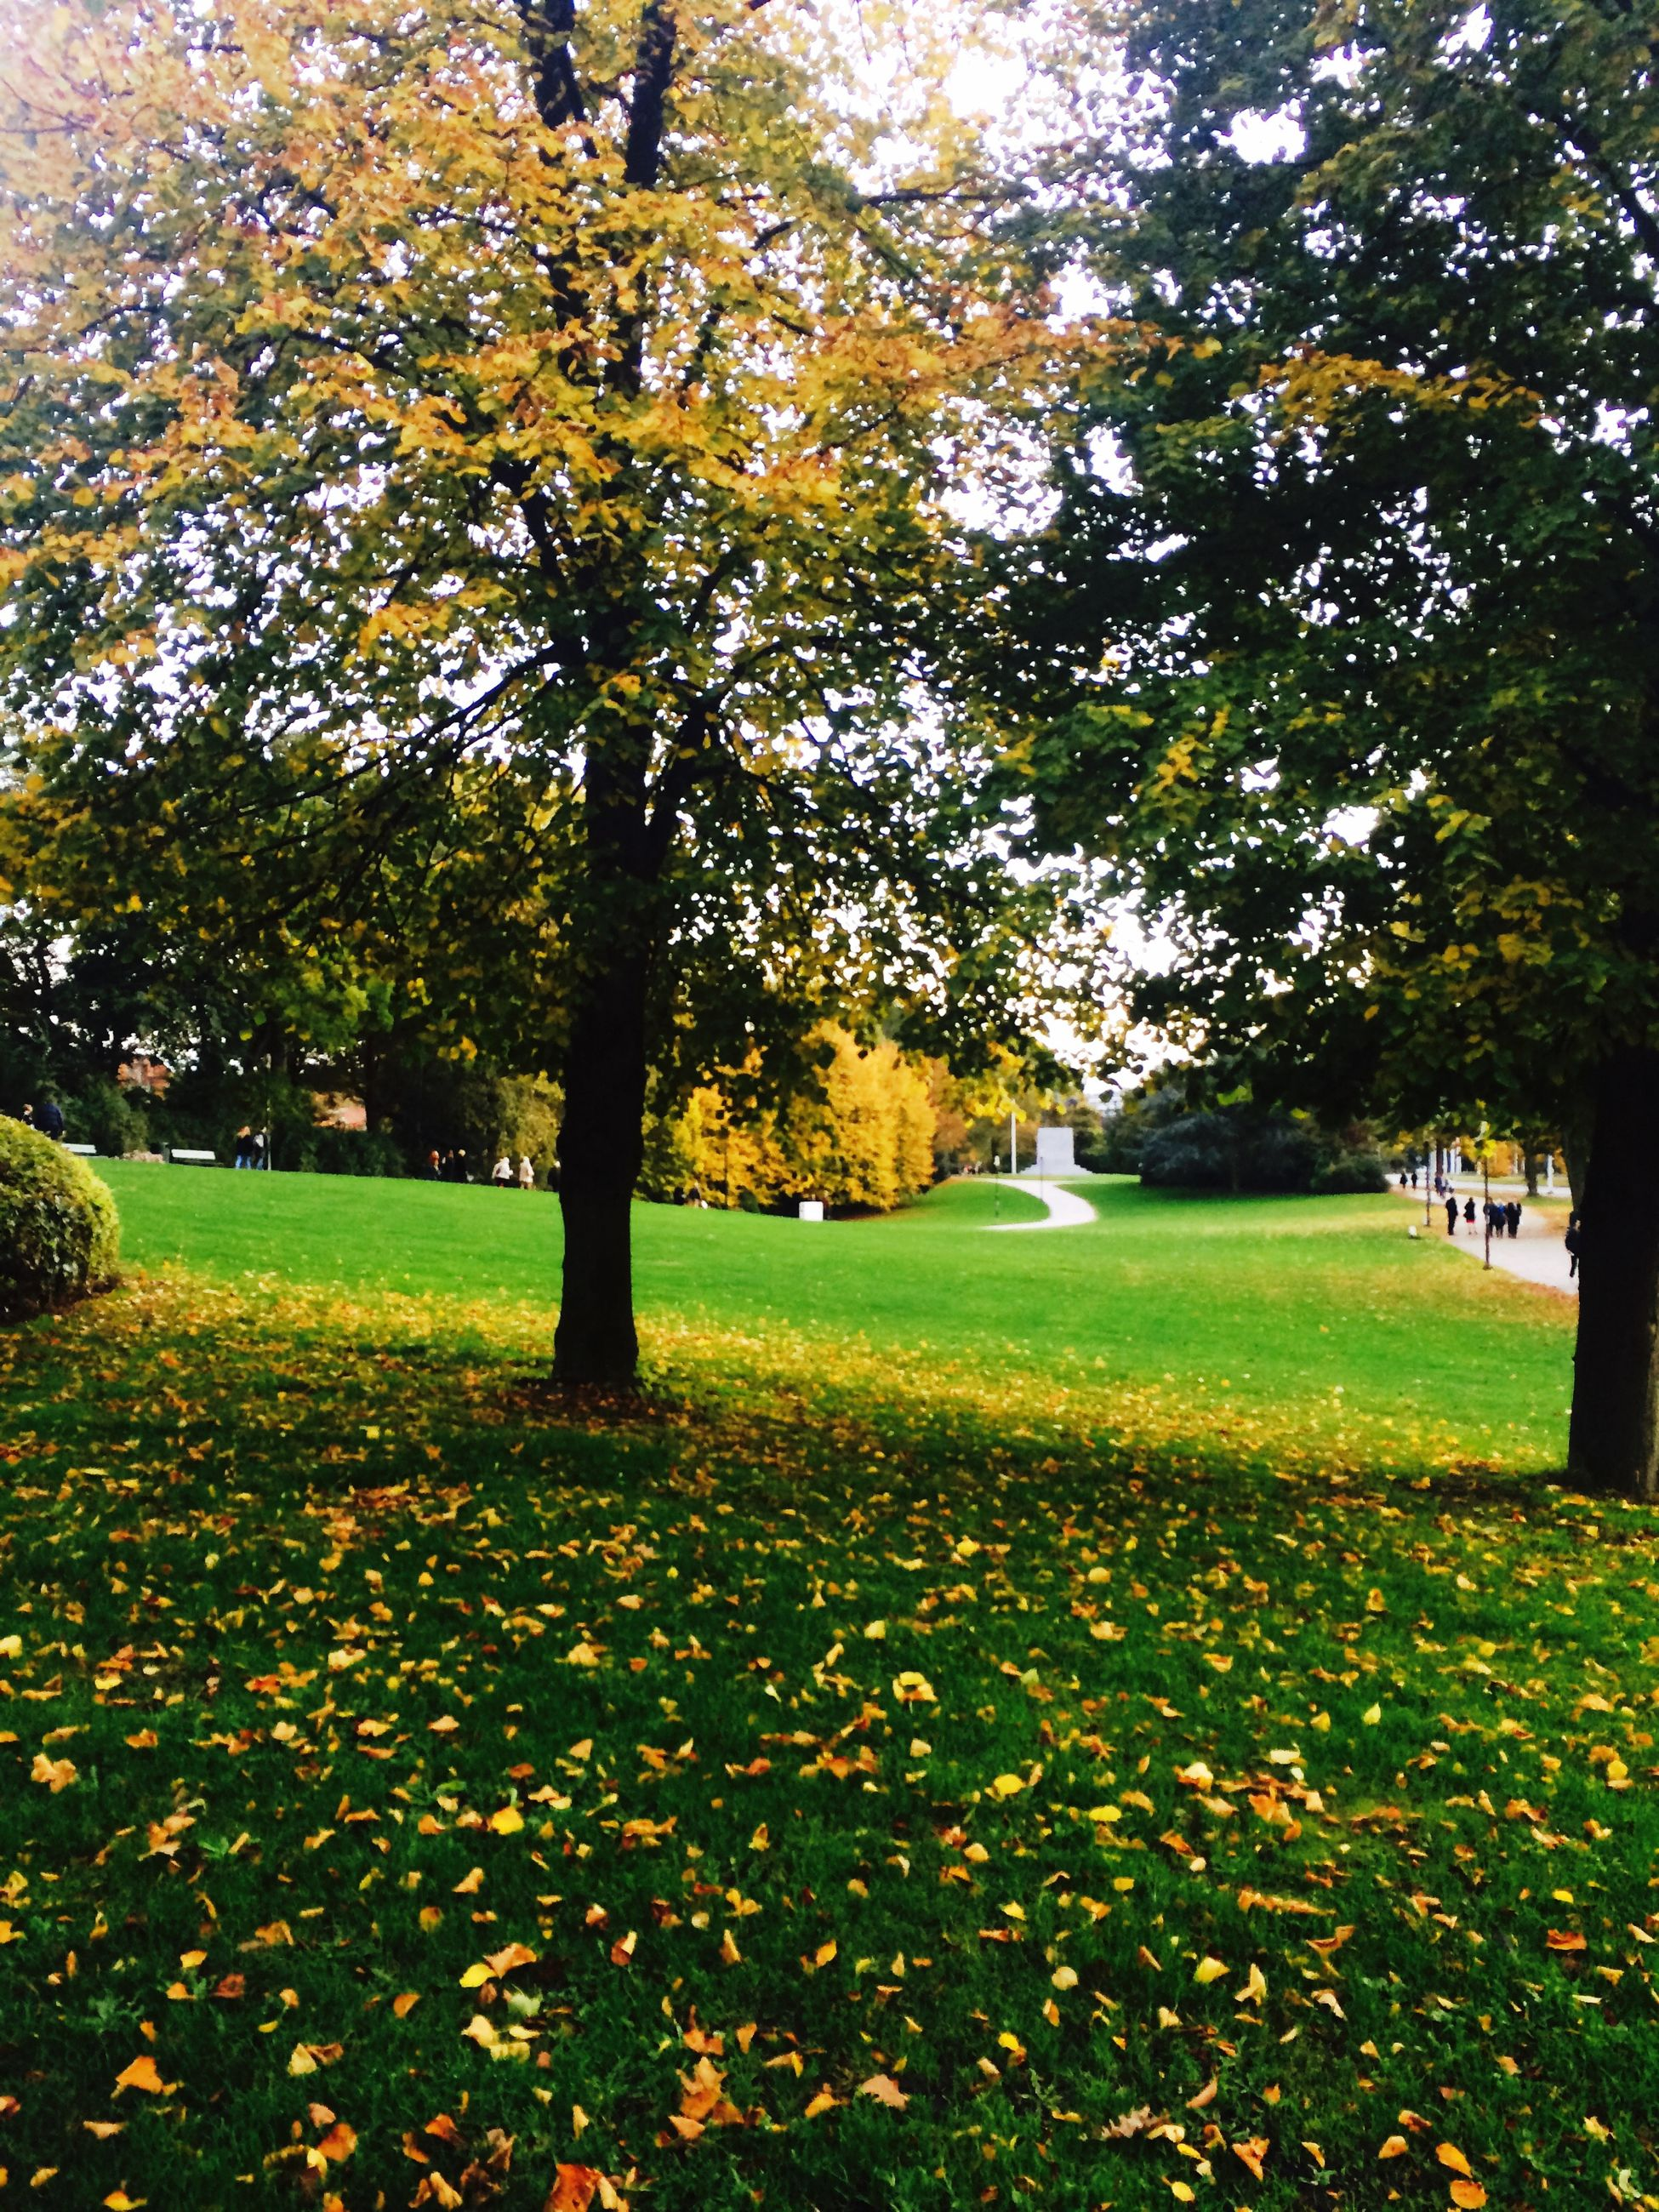 tree, autumn, change, season, growth, beauty in nature, tranquility, yellow, nature, park - man made space, leaf, tranquil scene, branch, park, field, scenics, grass, fallen, flower, sunlight